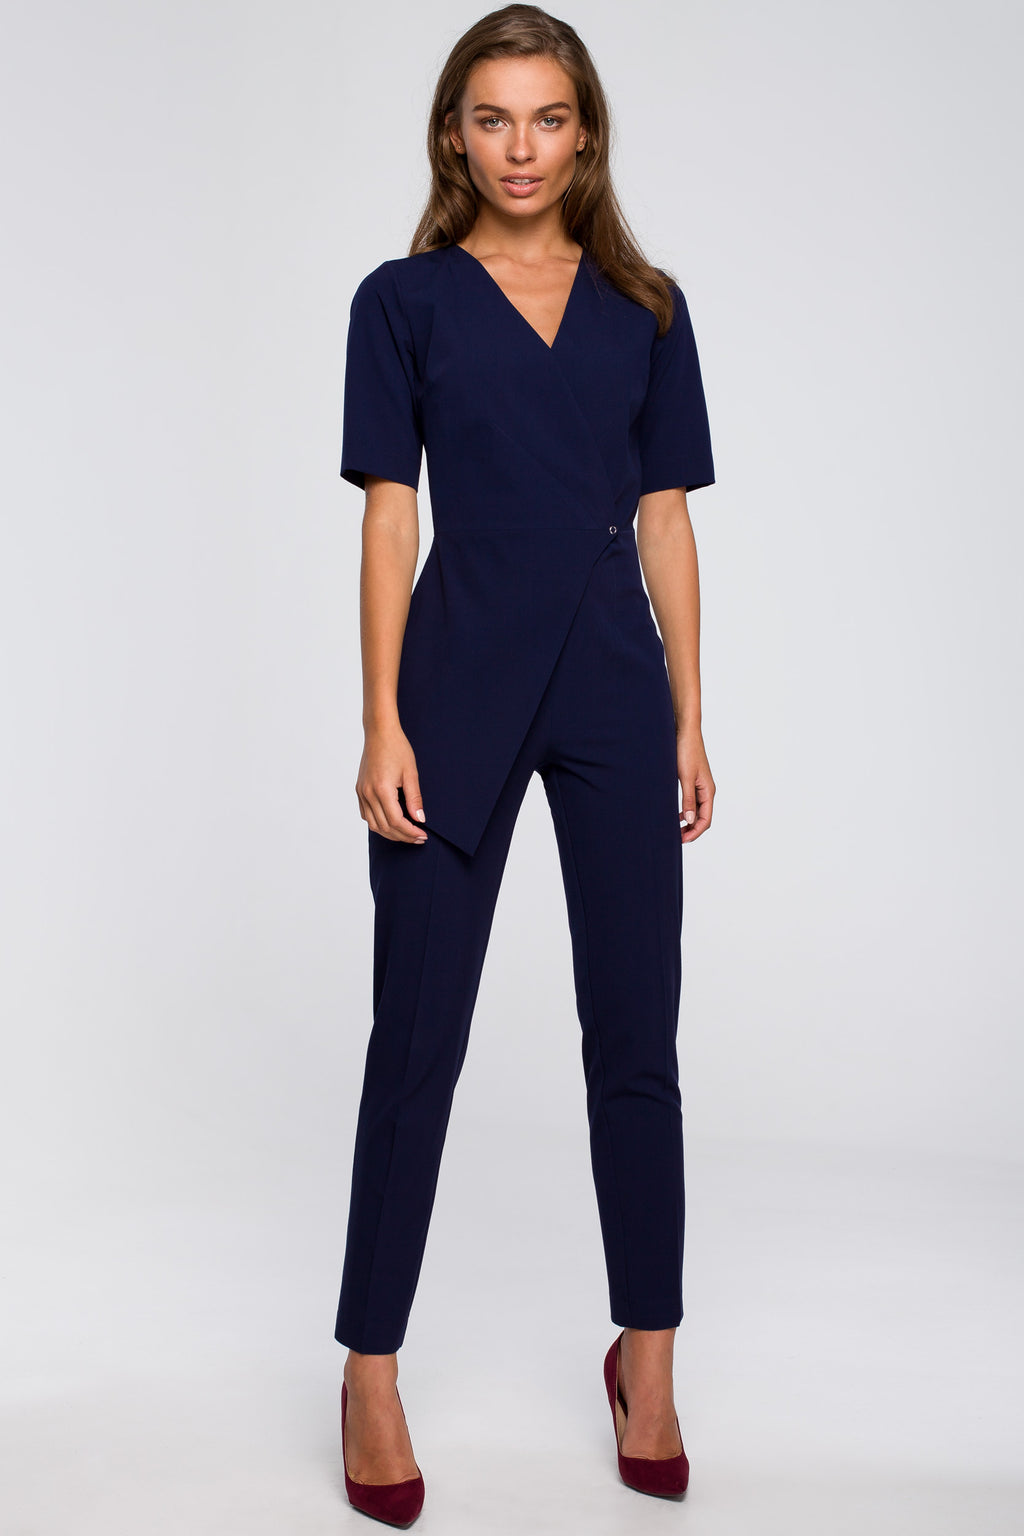 Navy Blue Jumpsuit With An Asymmetric Wrap Front - So Chic Boutique